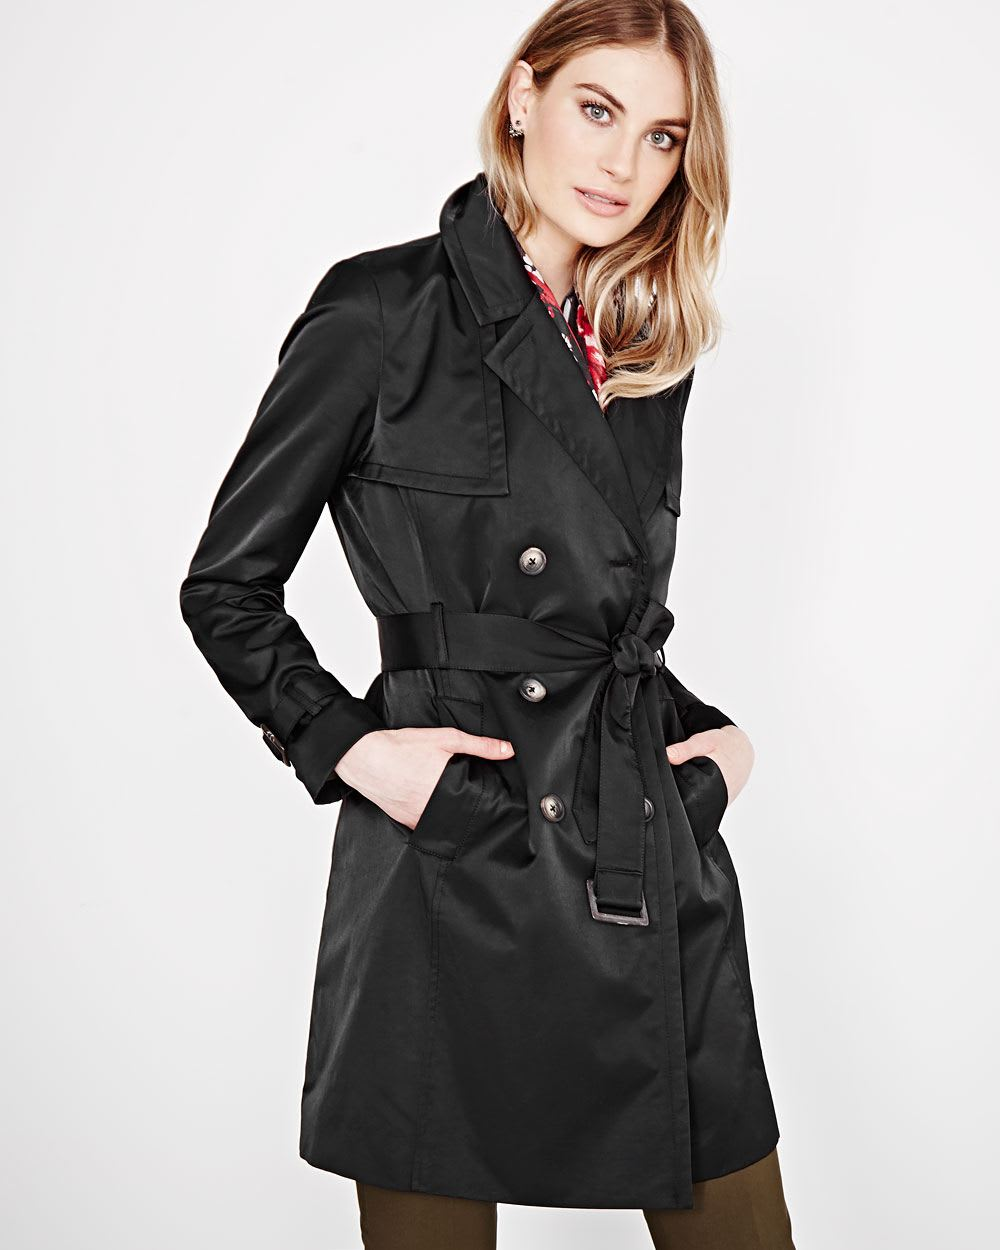 Classic trench coat with high notch collar and button closure. Men's Classic Single Breasted Wool Walker Coat Stylish Jacket by ELETOP. $ - $ $ 85 $ 89 99 Prime. FREE Shipping on eligible orders. Some sizes/colors are Prime eligible. out of 5 stars 3. Product Features.